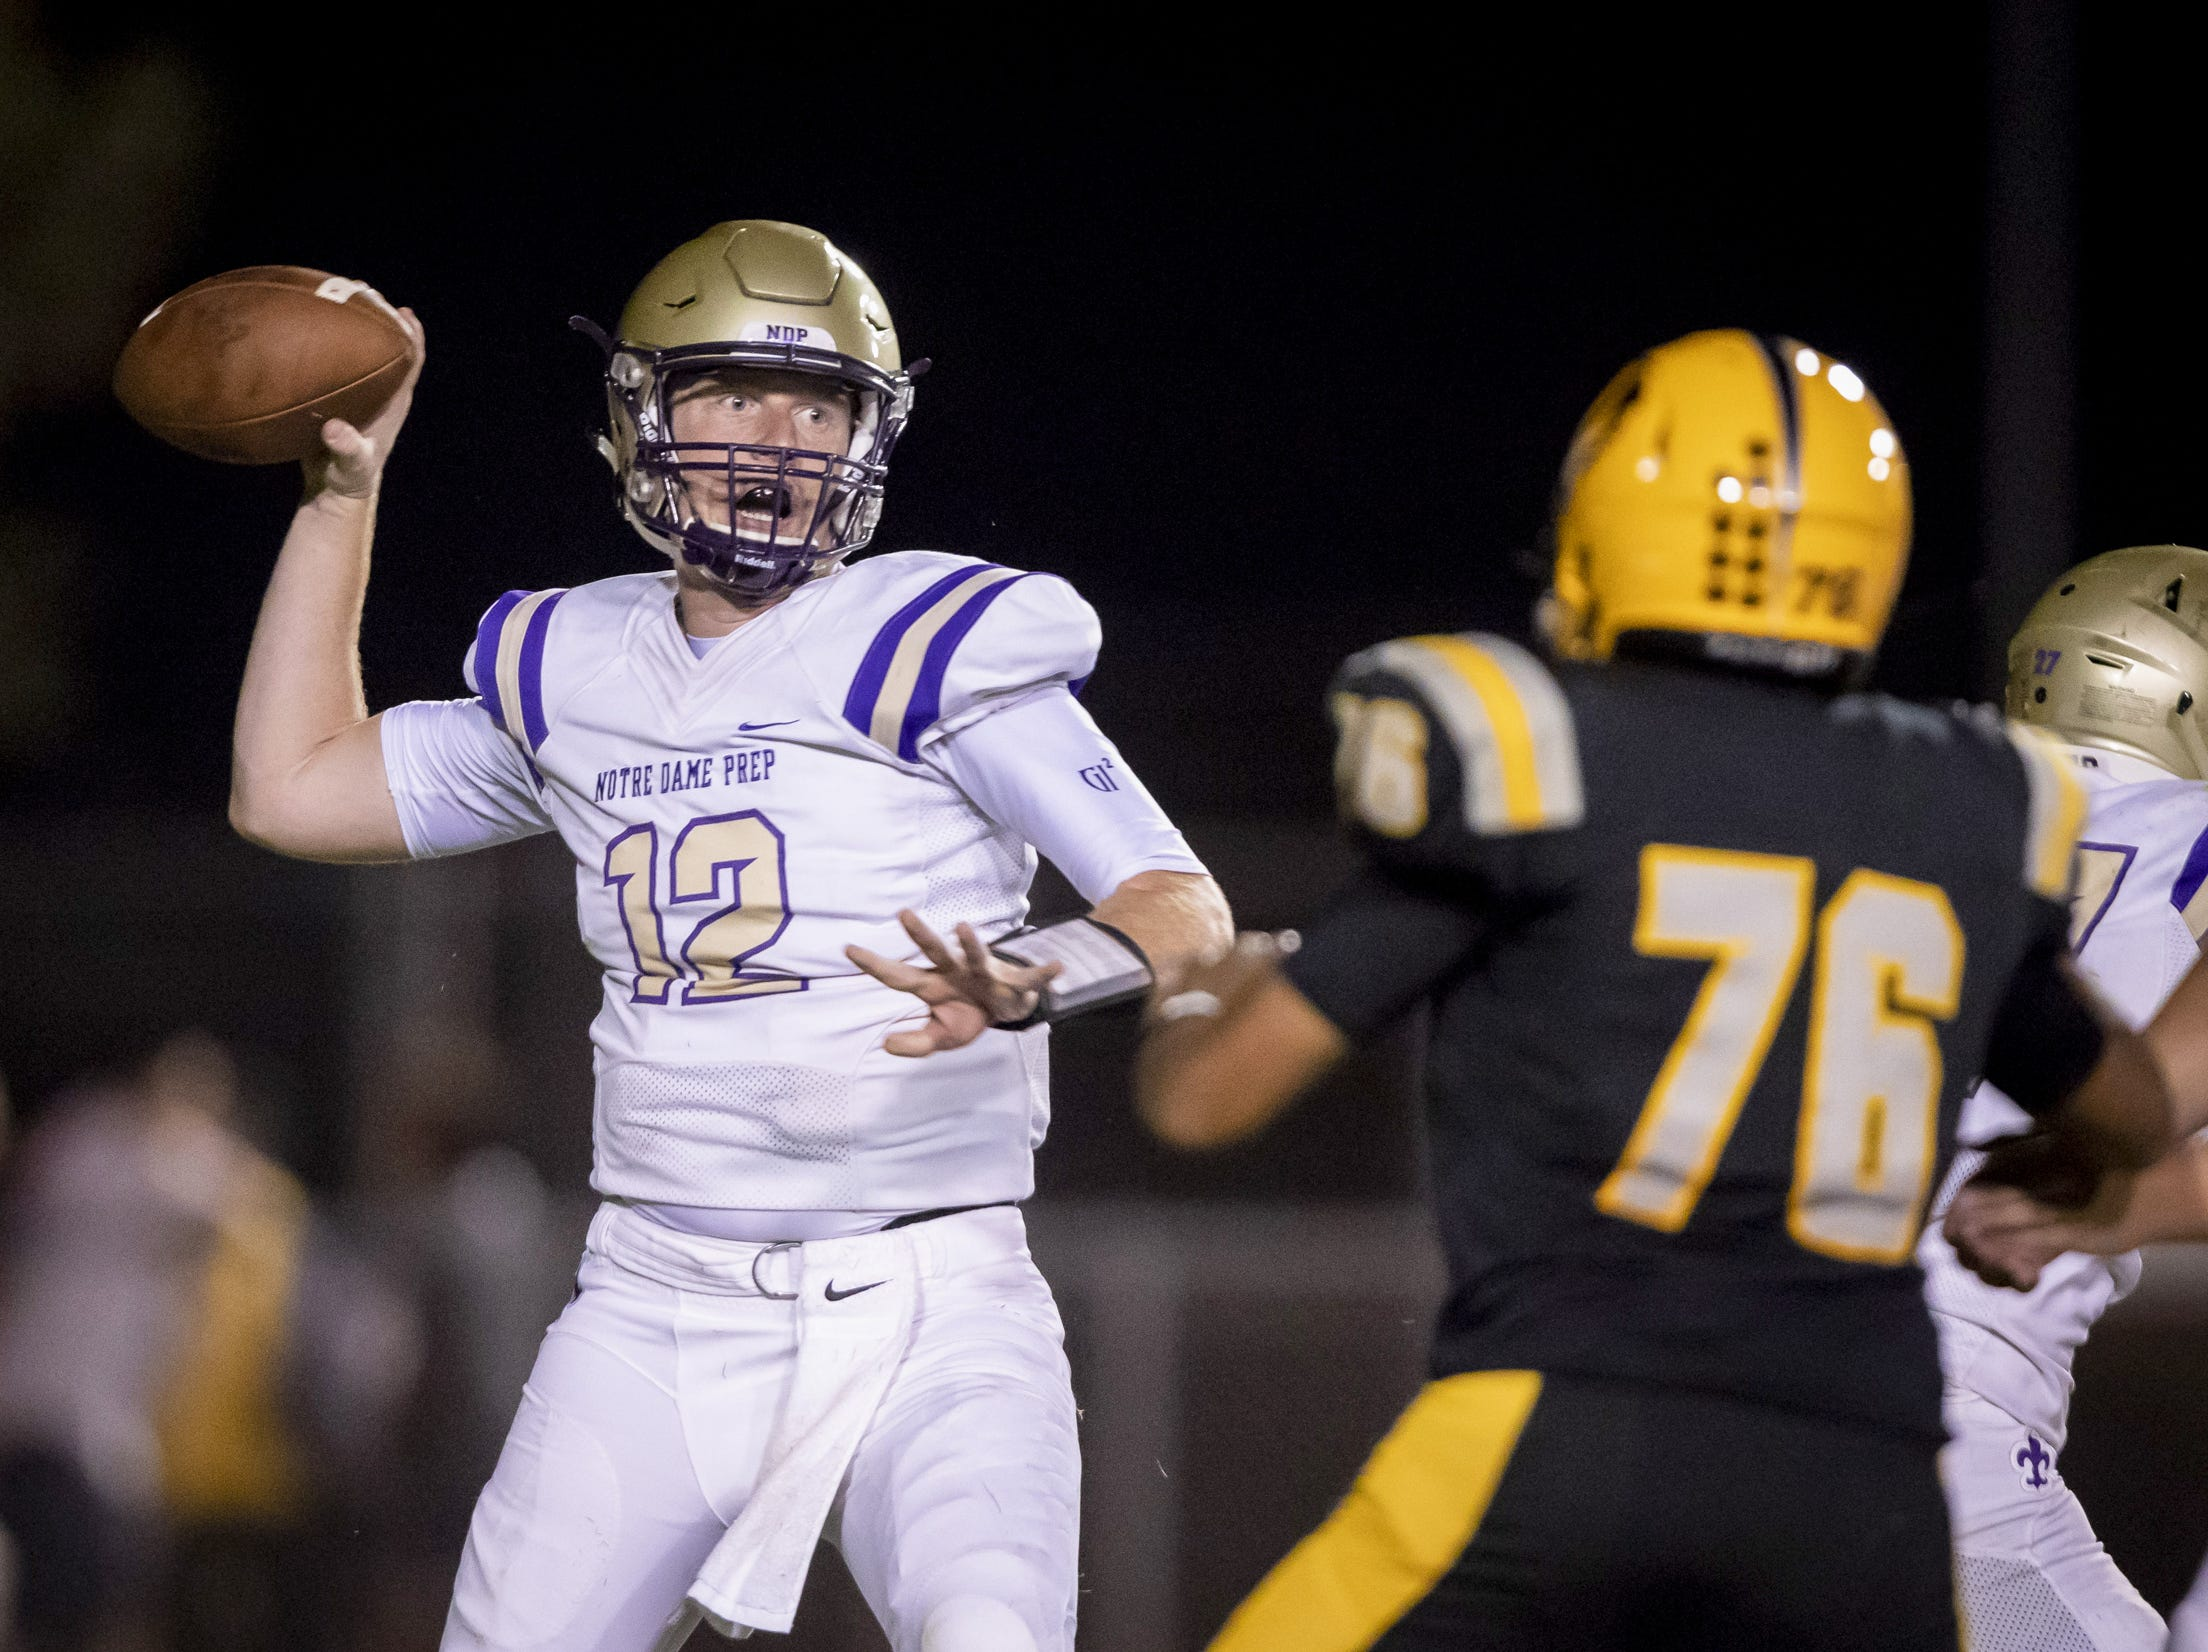 Senior quarterback Jake Farrell (12) of the Notre Dame Prep Saints throws a pass against the Gilbert Tigers at Gilbert High School on Friday, August 31, 2018 in Gilbert, Arizona.